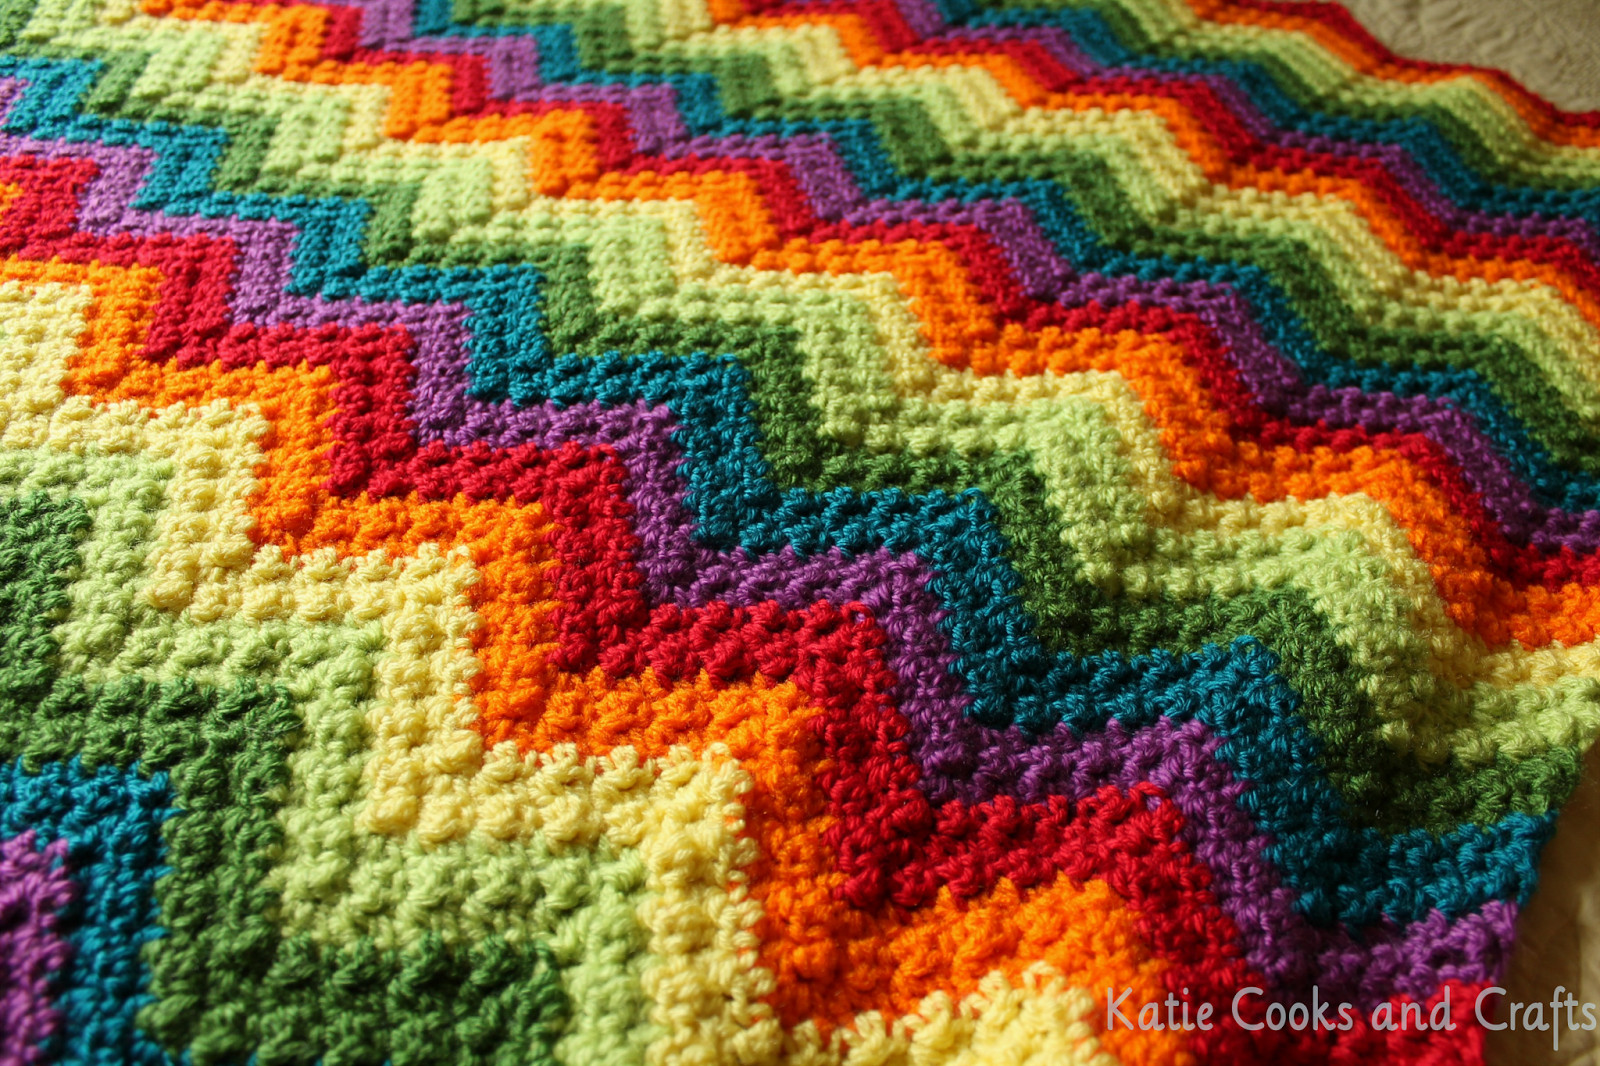 Free Knitted Baby Afghan Patterns Inspirational Katie Cooks and Crafts Rumpled Ripple Rainbow Crochet Of Superb 43 Pics Free Knitted Baby Afghan Patterns